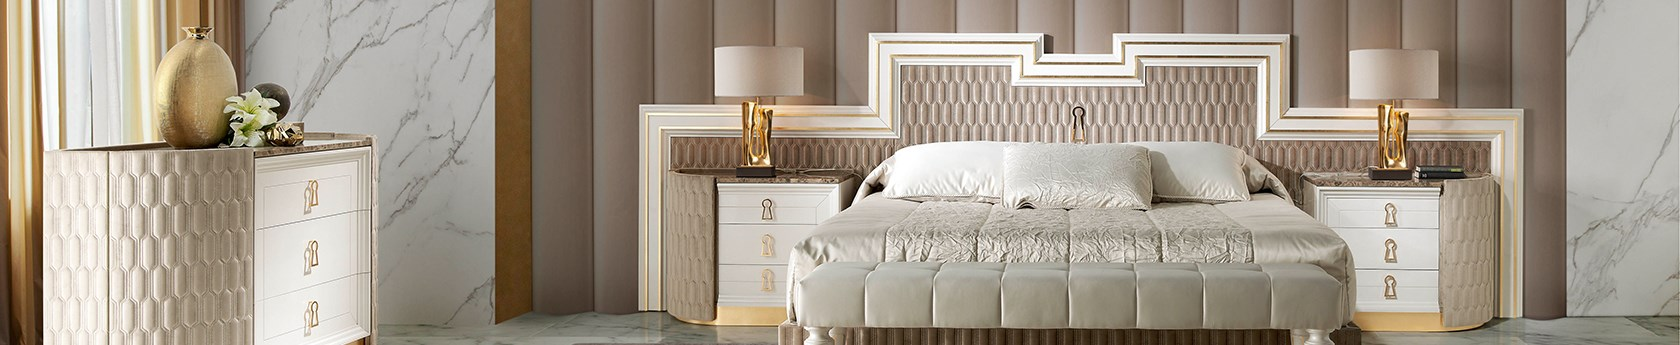 pico-muebles-luxury-bedroom-dormitorio-lujo-secrets-1.jpg